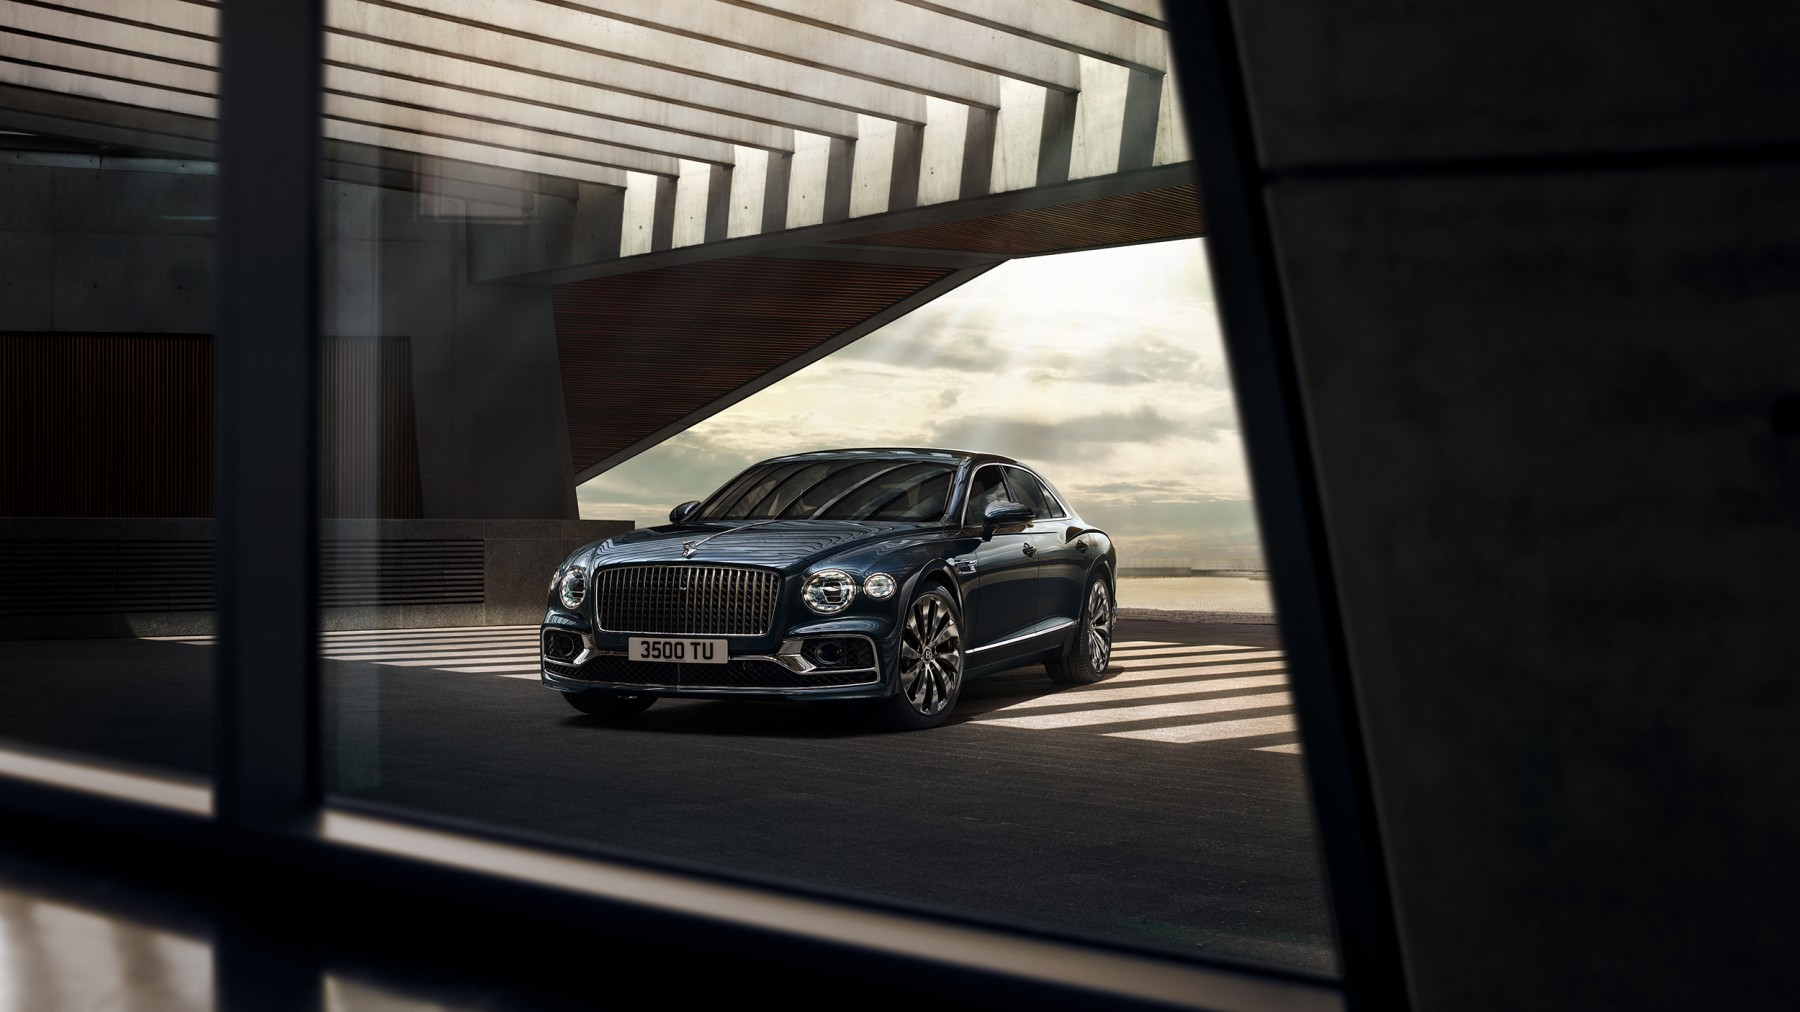 the-new-bentley-flying-spur-5-by-marc-trautmann